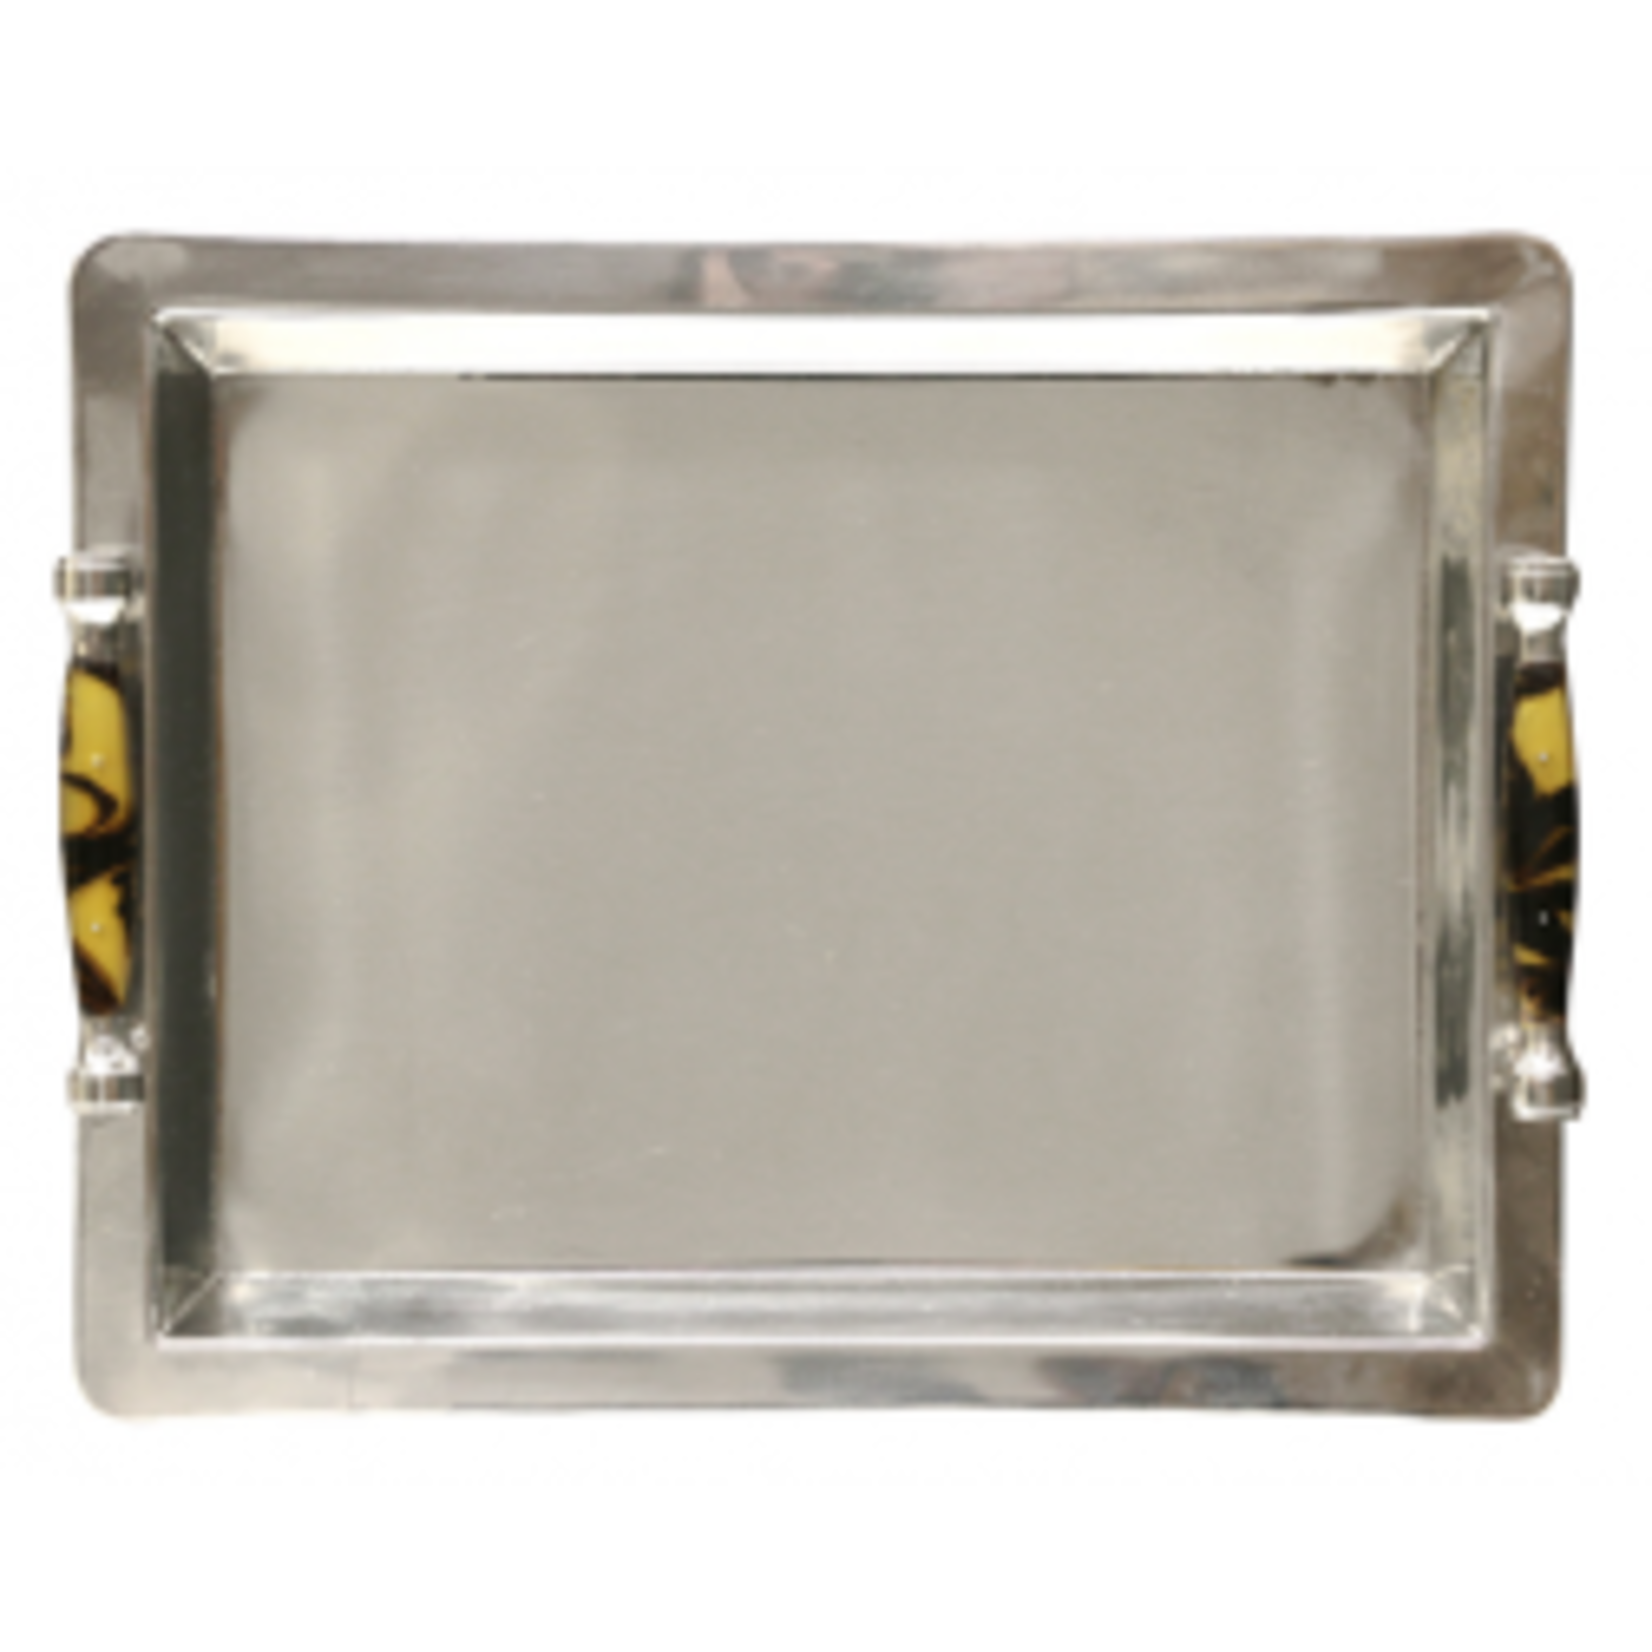 CC Interiors Stainless Steel Tray with Handles